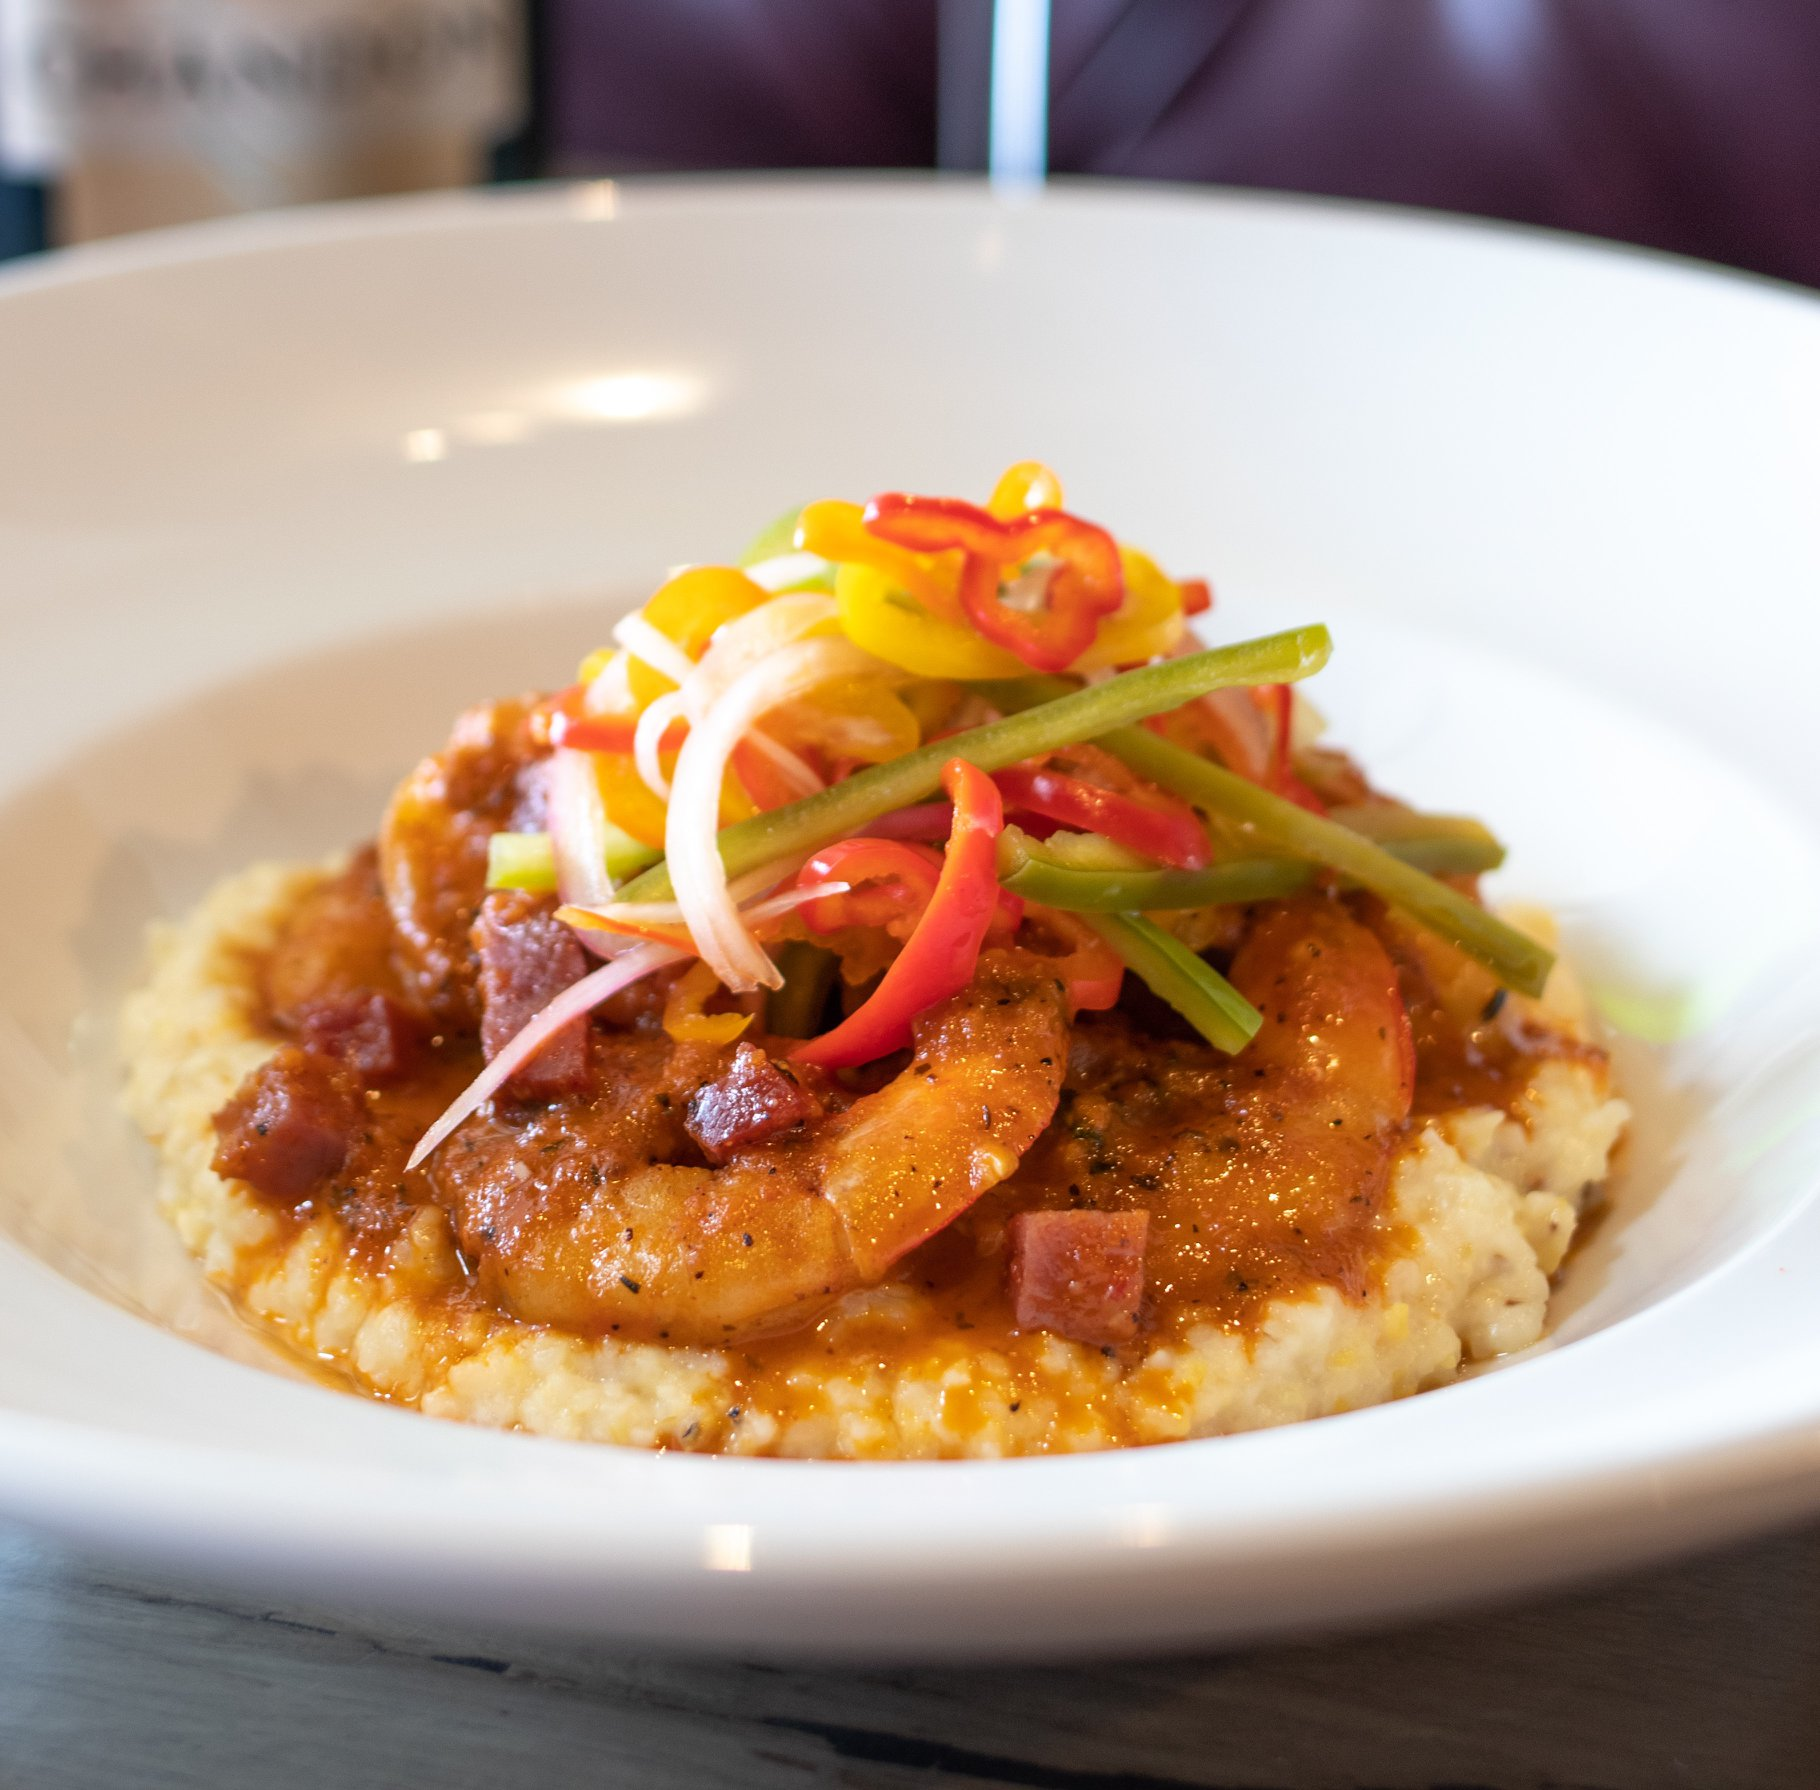 A Brief History of Shrimp and Grits